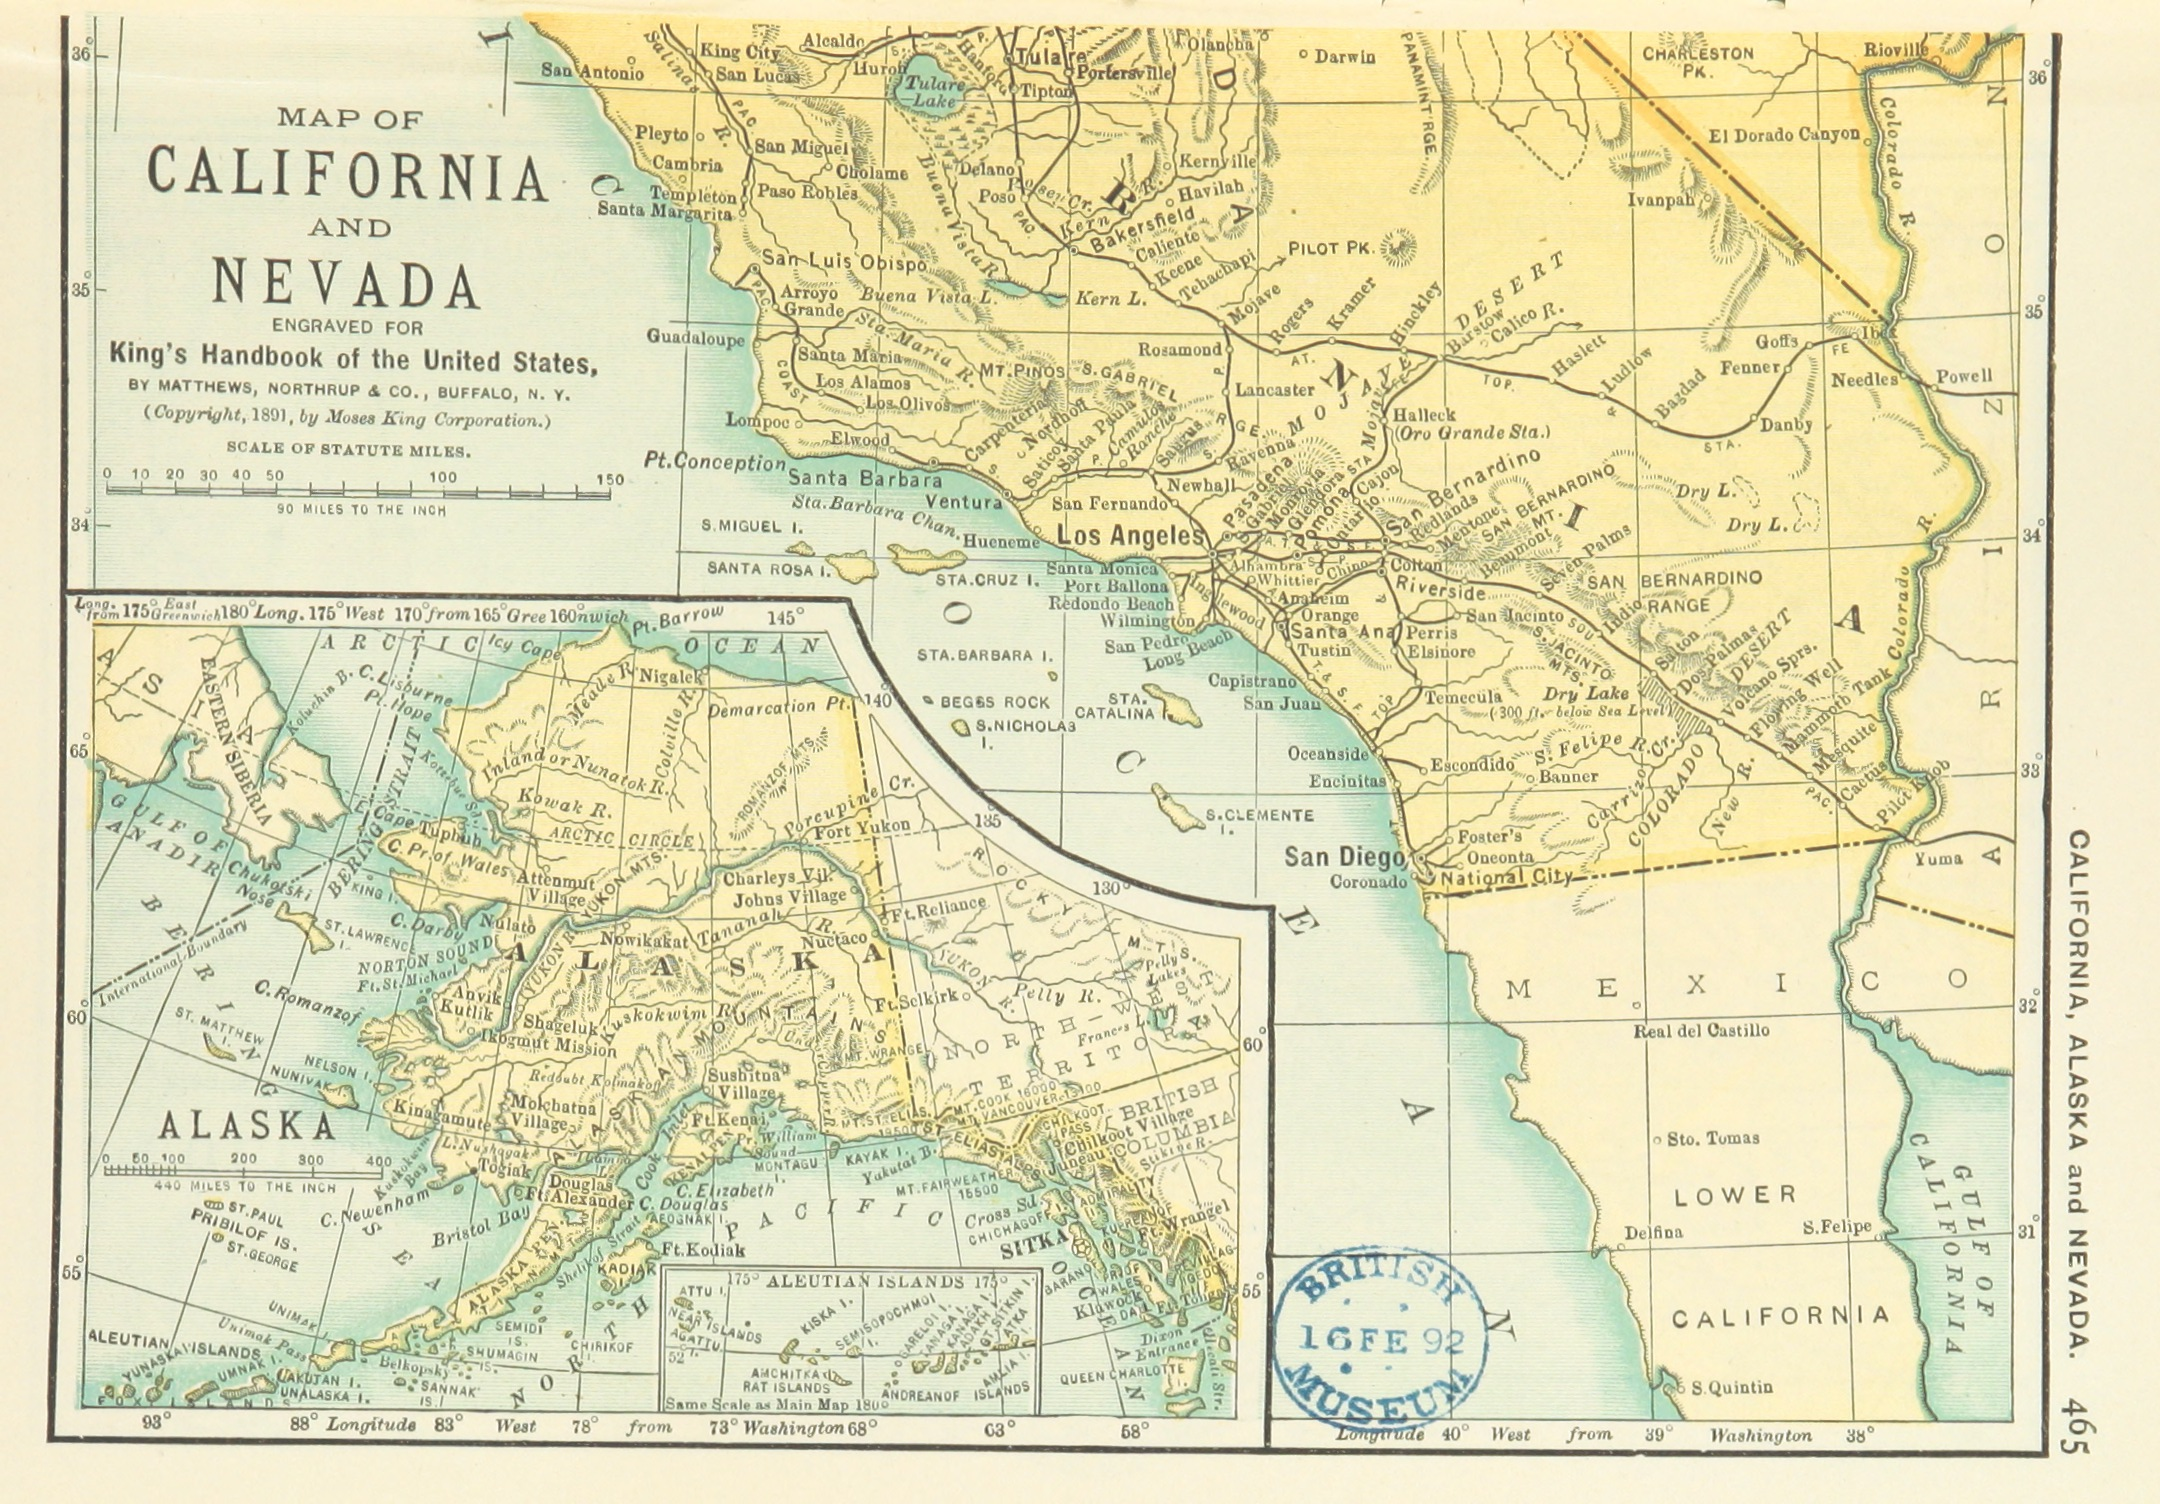 File:US-MAPS(1891) p467 - MAP OF CALIFORNIA, NEVADA AND ...